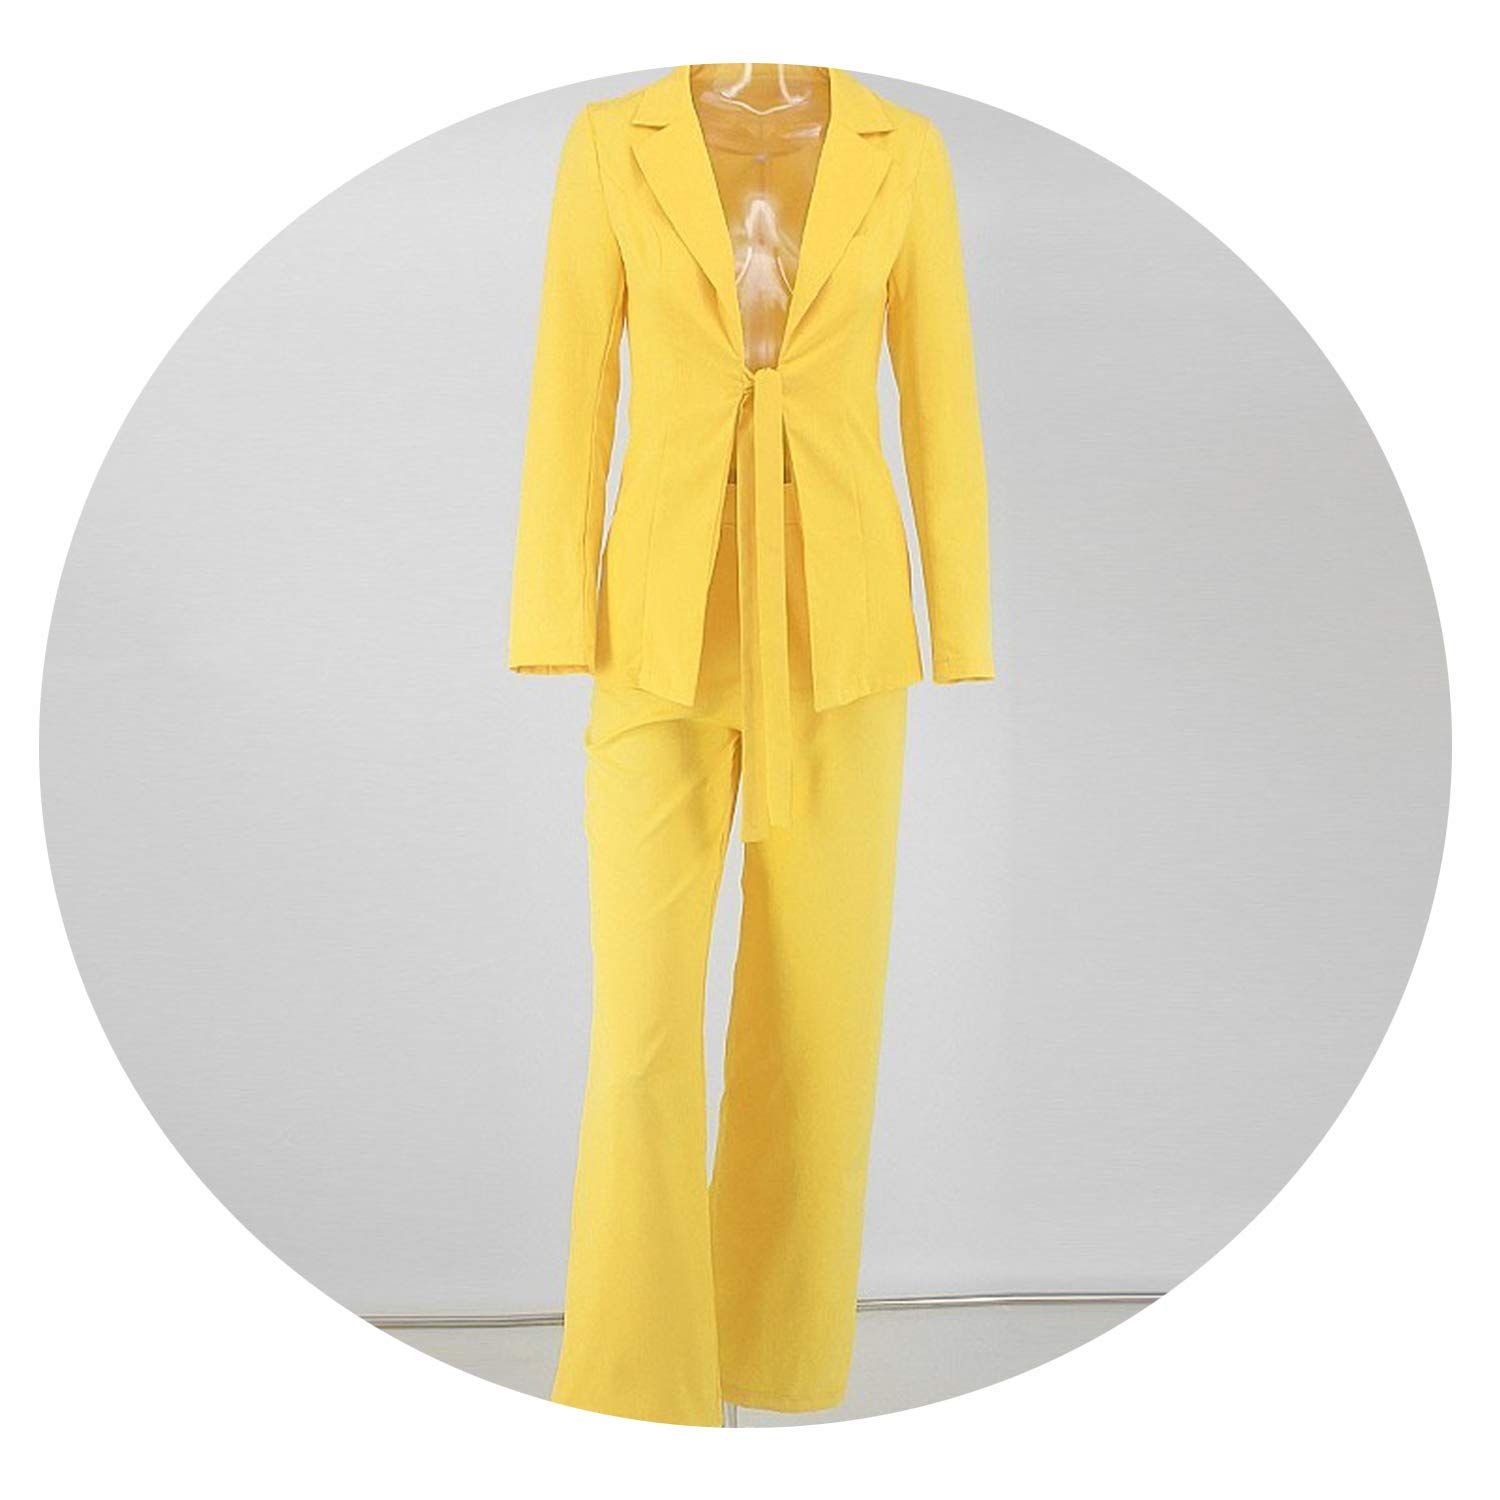 YELLOW Bow Ladies Suit Women Suits Office Sets Casual Blazer and Pants Set Formal Two Piece Set